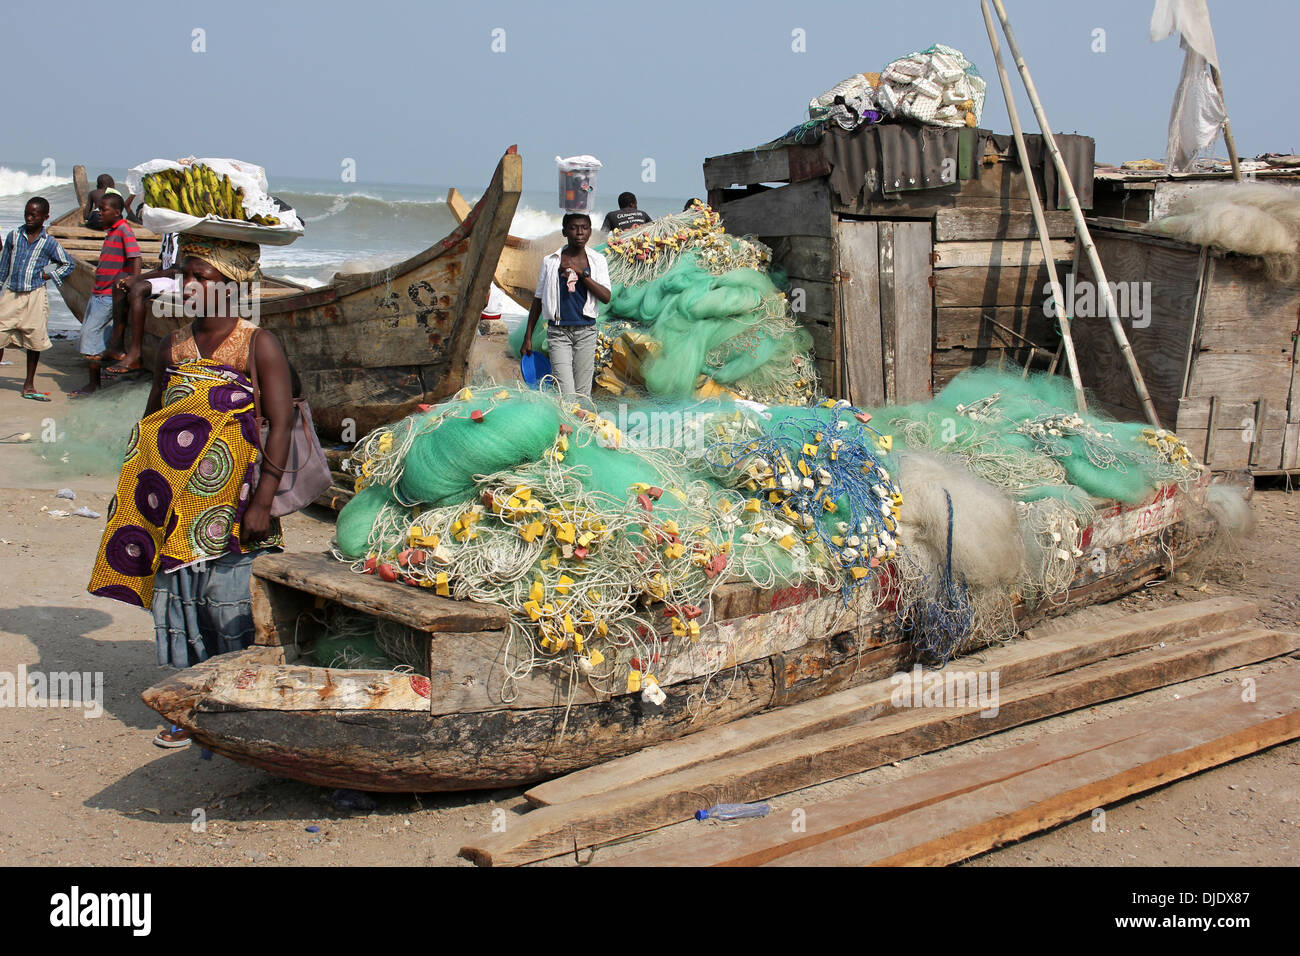 Everyday Scene At Cape Coast Fishing Port, Ghana - Stock Image